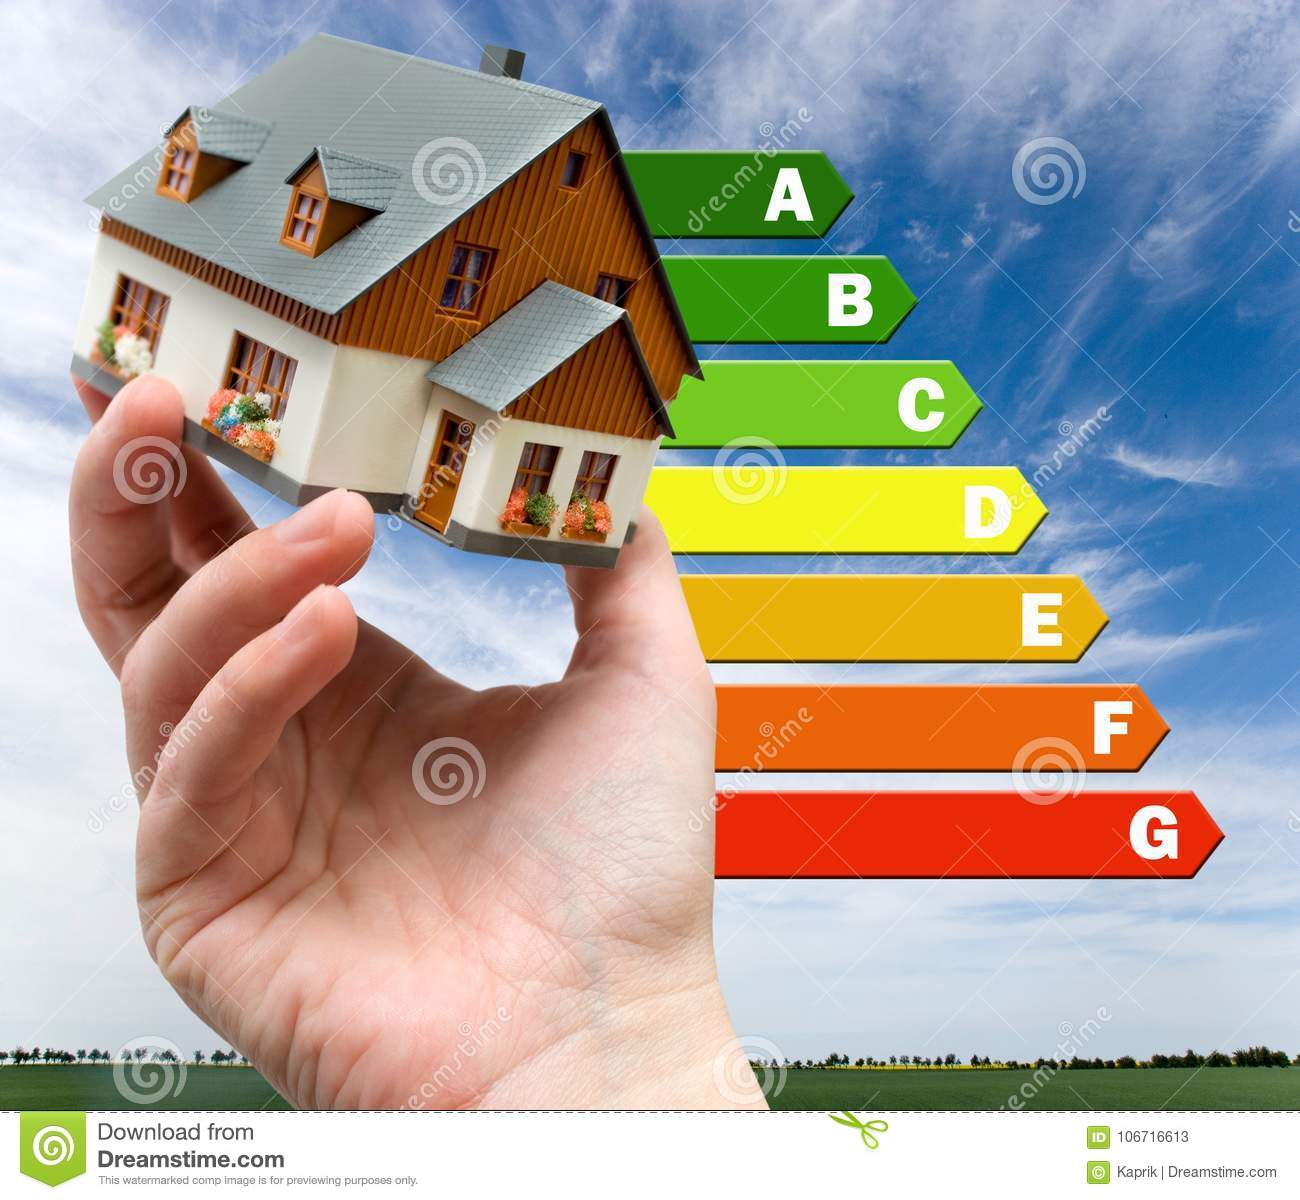 Energy efficiency label for house / heating and emoney savings -